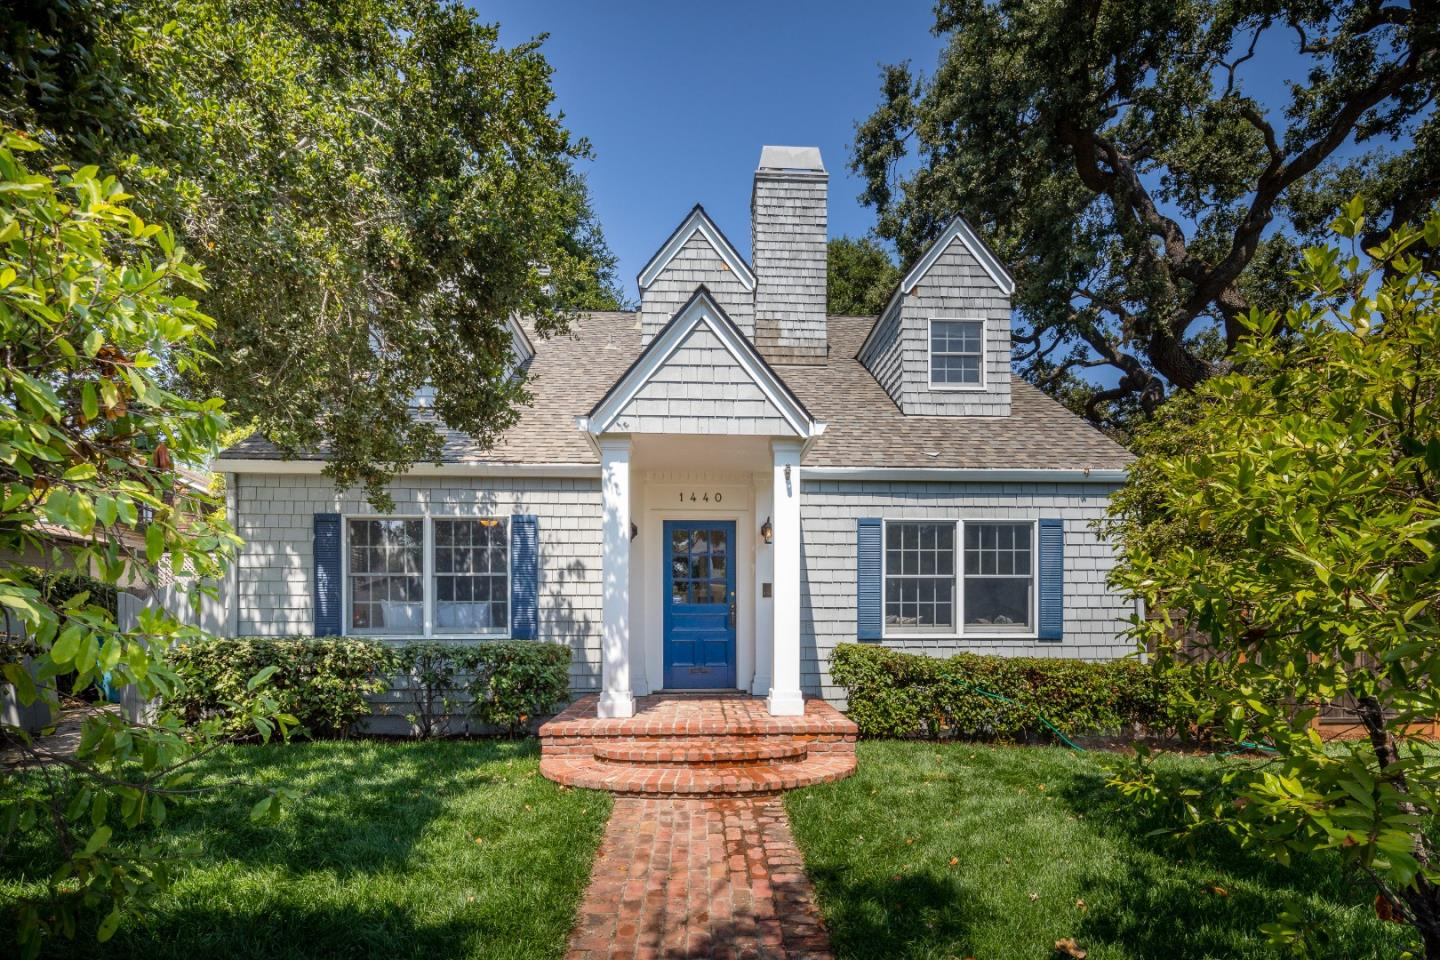 1440 S California Avenue, PALO ALTO, CA 94306